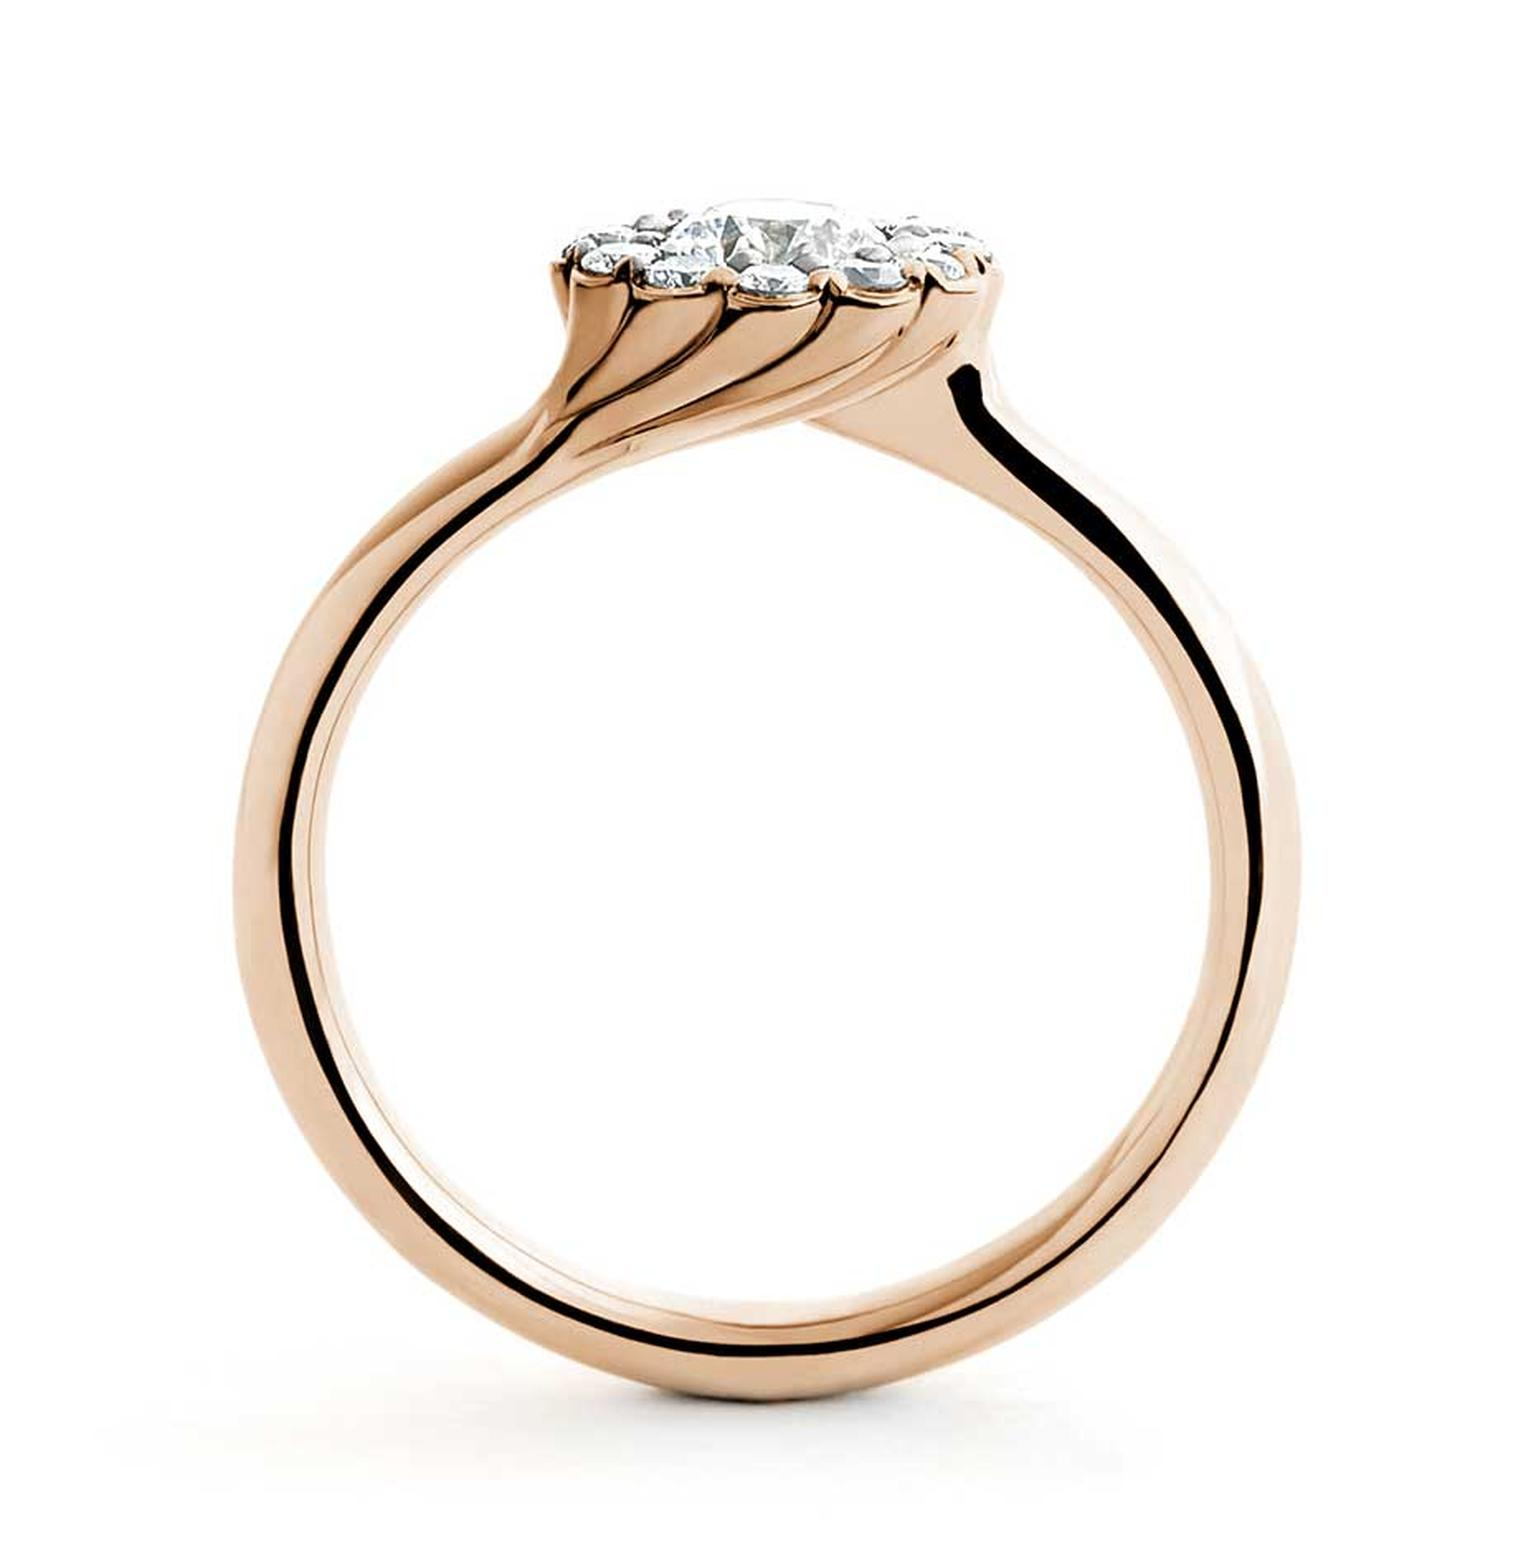 A side-on view of the aptly named Cannelé Twist engagement ring in rose gold by Andrew Geoghegan.